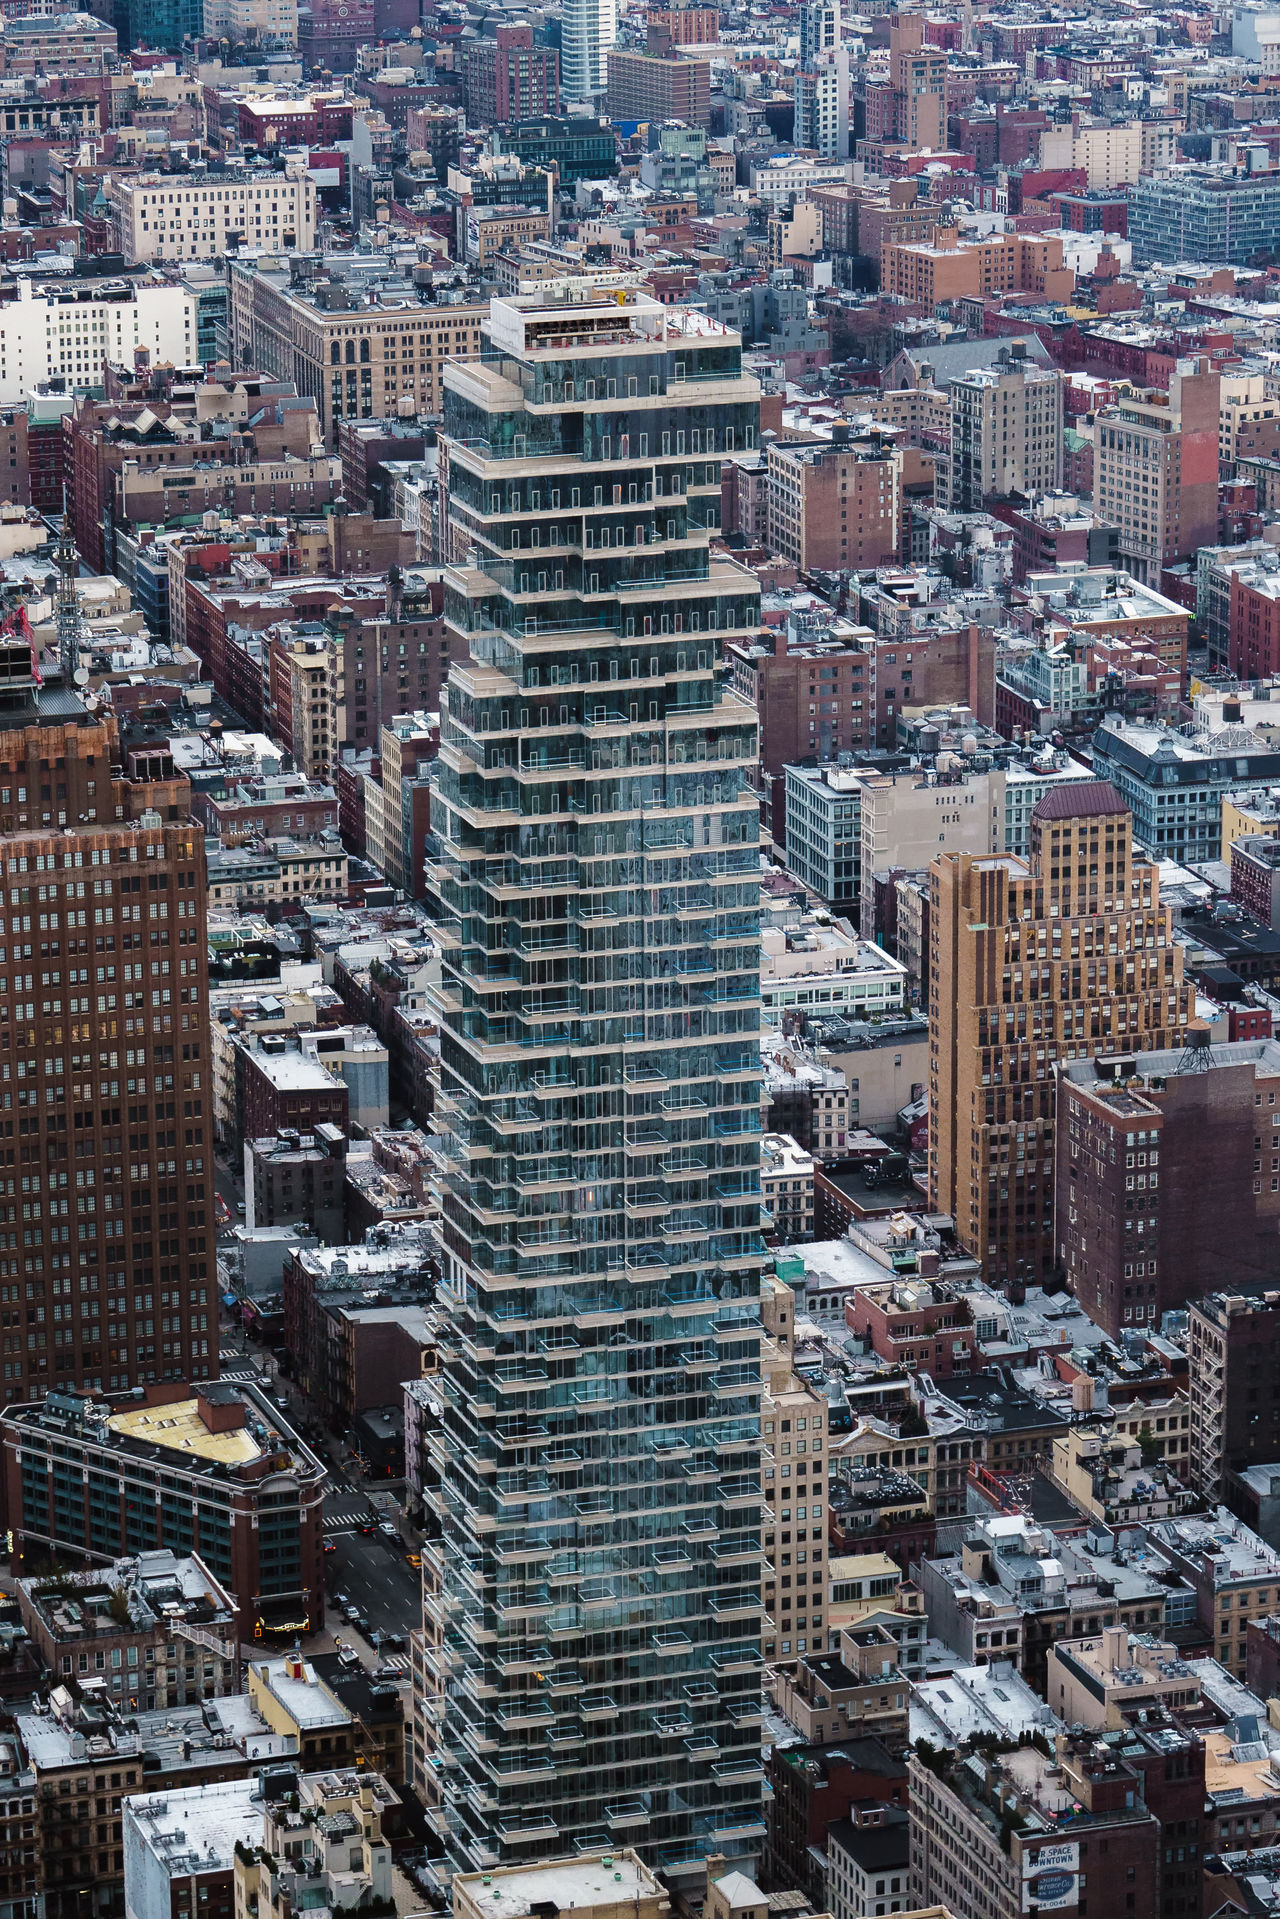 Luxury apartment building or skyscraper in manhattan ny Aerial View Appartment Architecture Building Exterior Built Structure City Cityscape Crowded Day Downtowm Downtown Downtown District Financial District  Hi M Outdoors Sky Skyscraper Tall Tower Travel Destinations